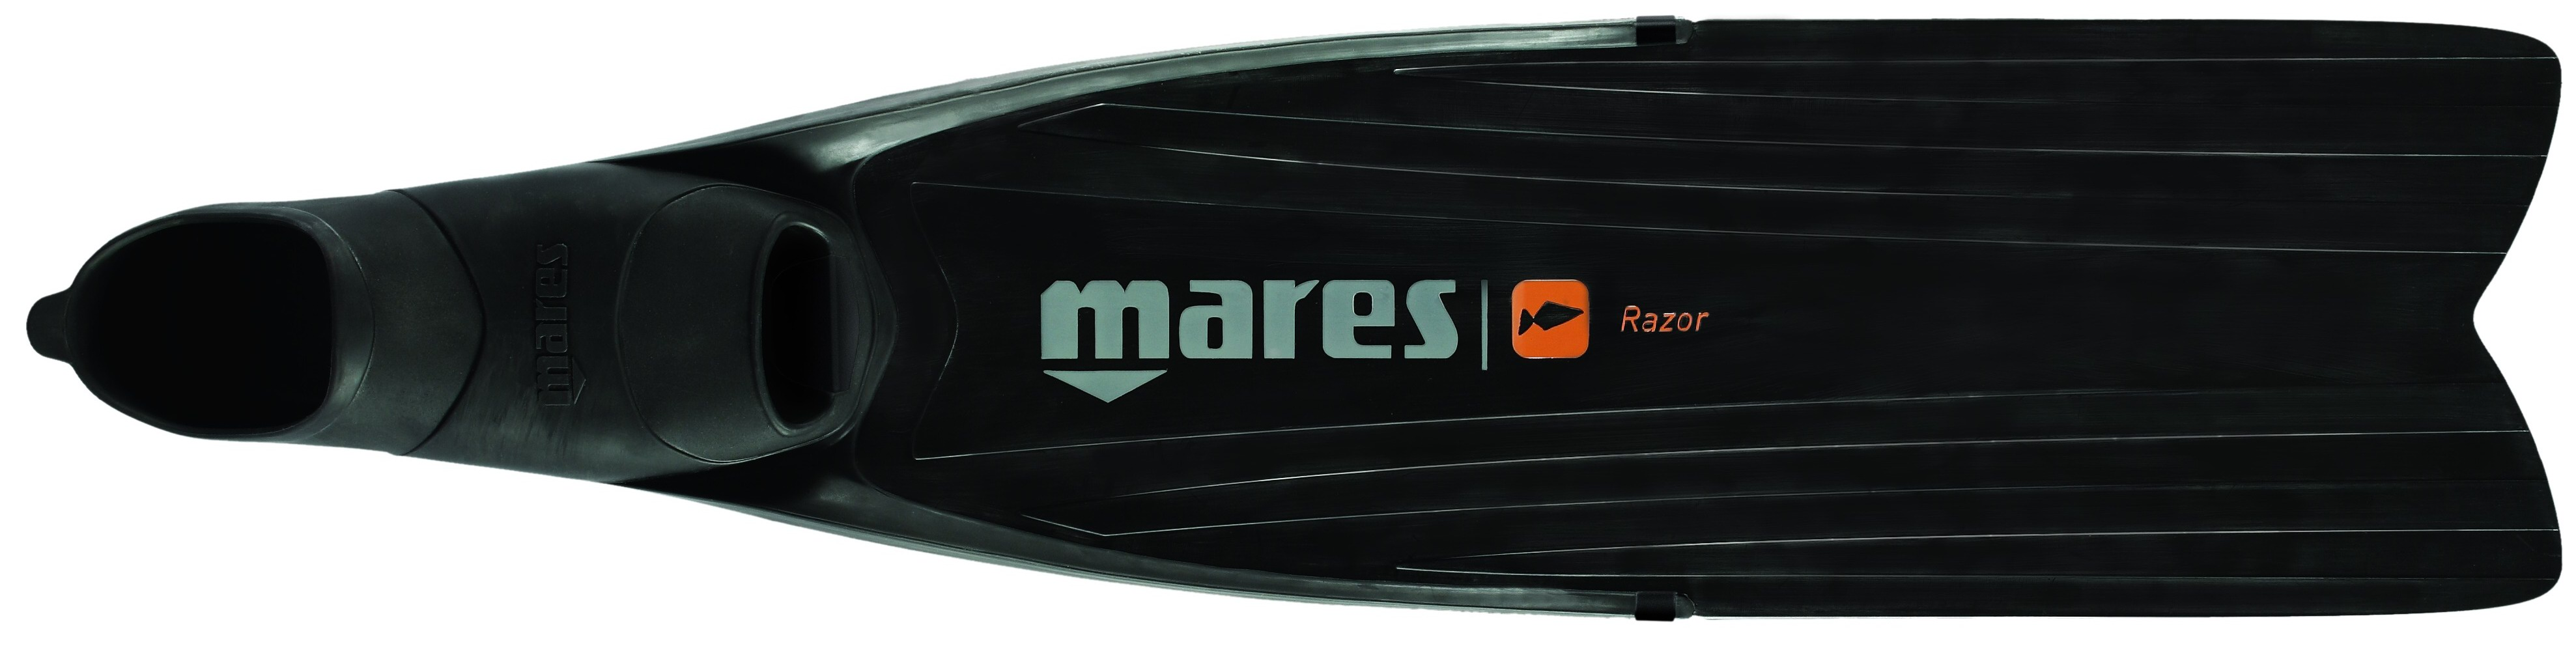 Mares Razor Pro Freedive Fins, The Dive Shack, Snorkel Safari, Adelaide, Scuba, Diving, Snorkelling, Freediving, Spearfishing